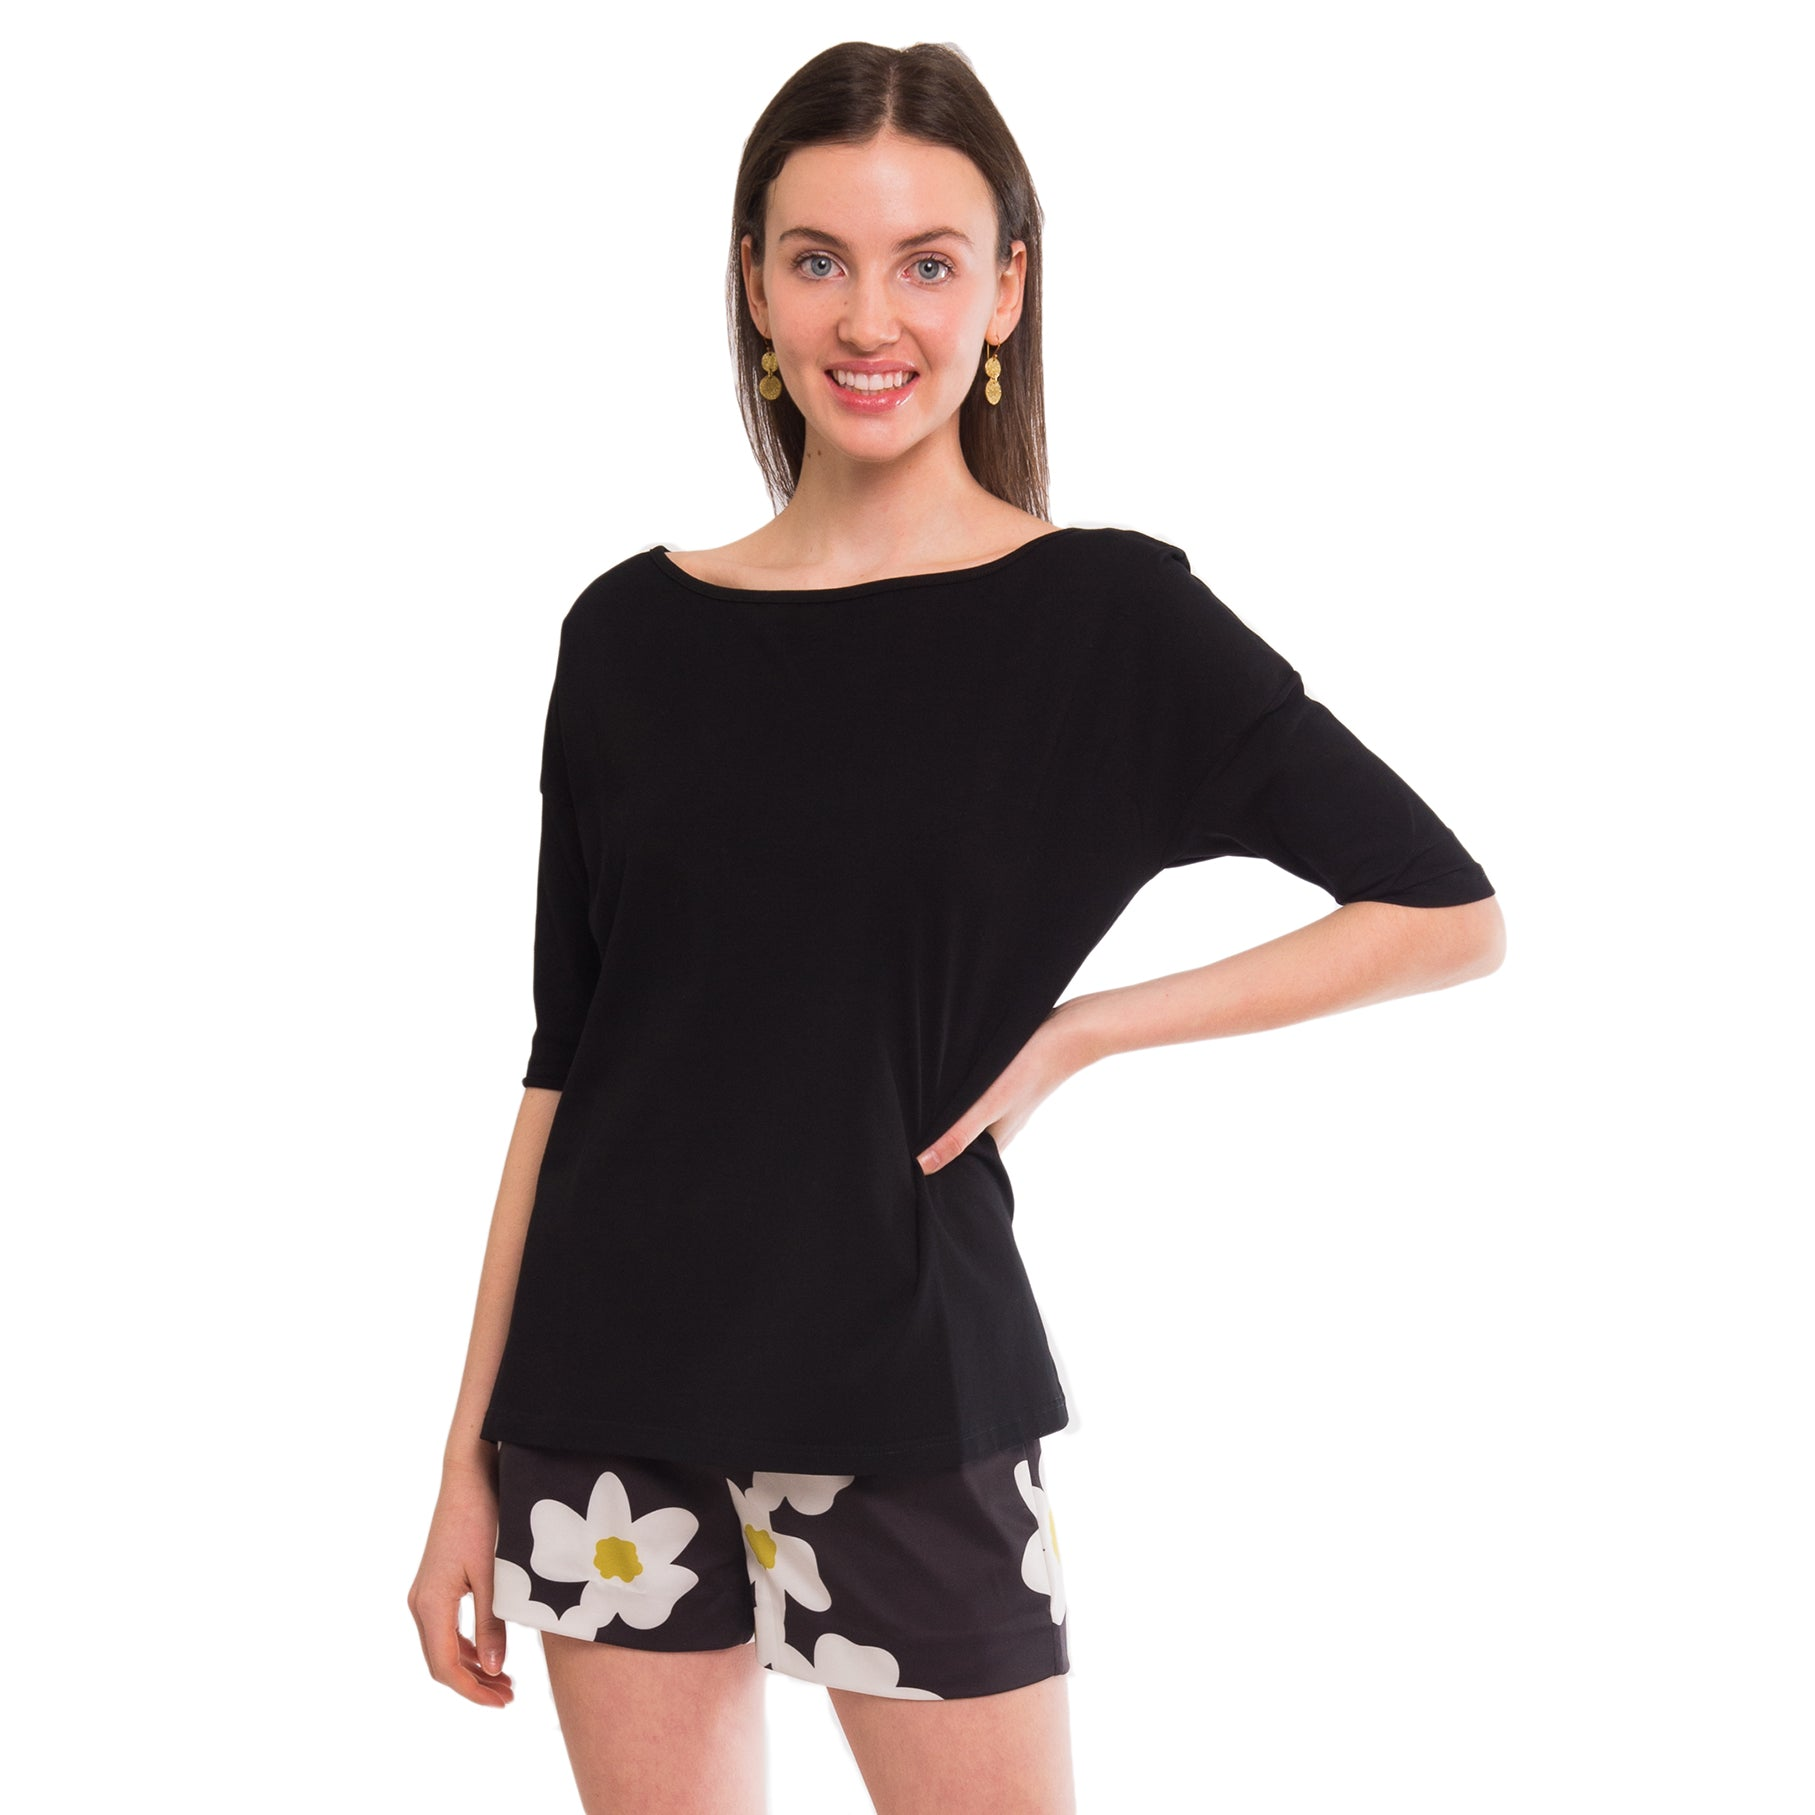 Suzanne Boatneck Tee in Black - Elizabeth Ackerman New York